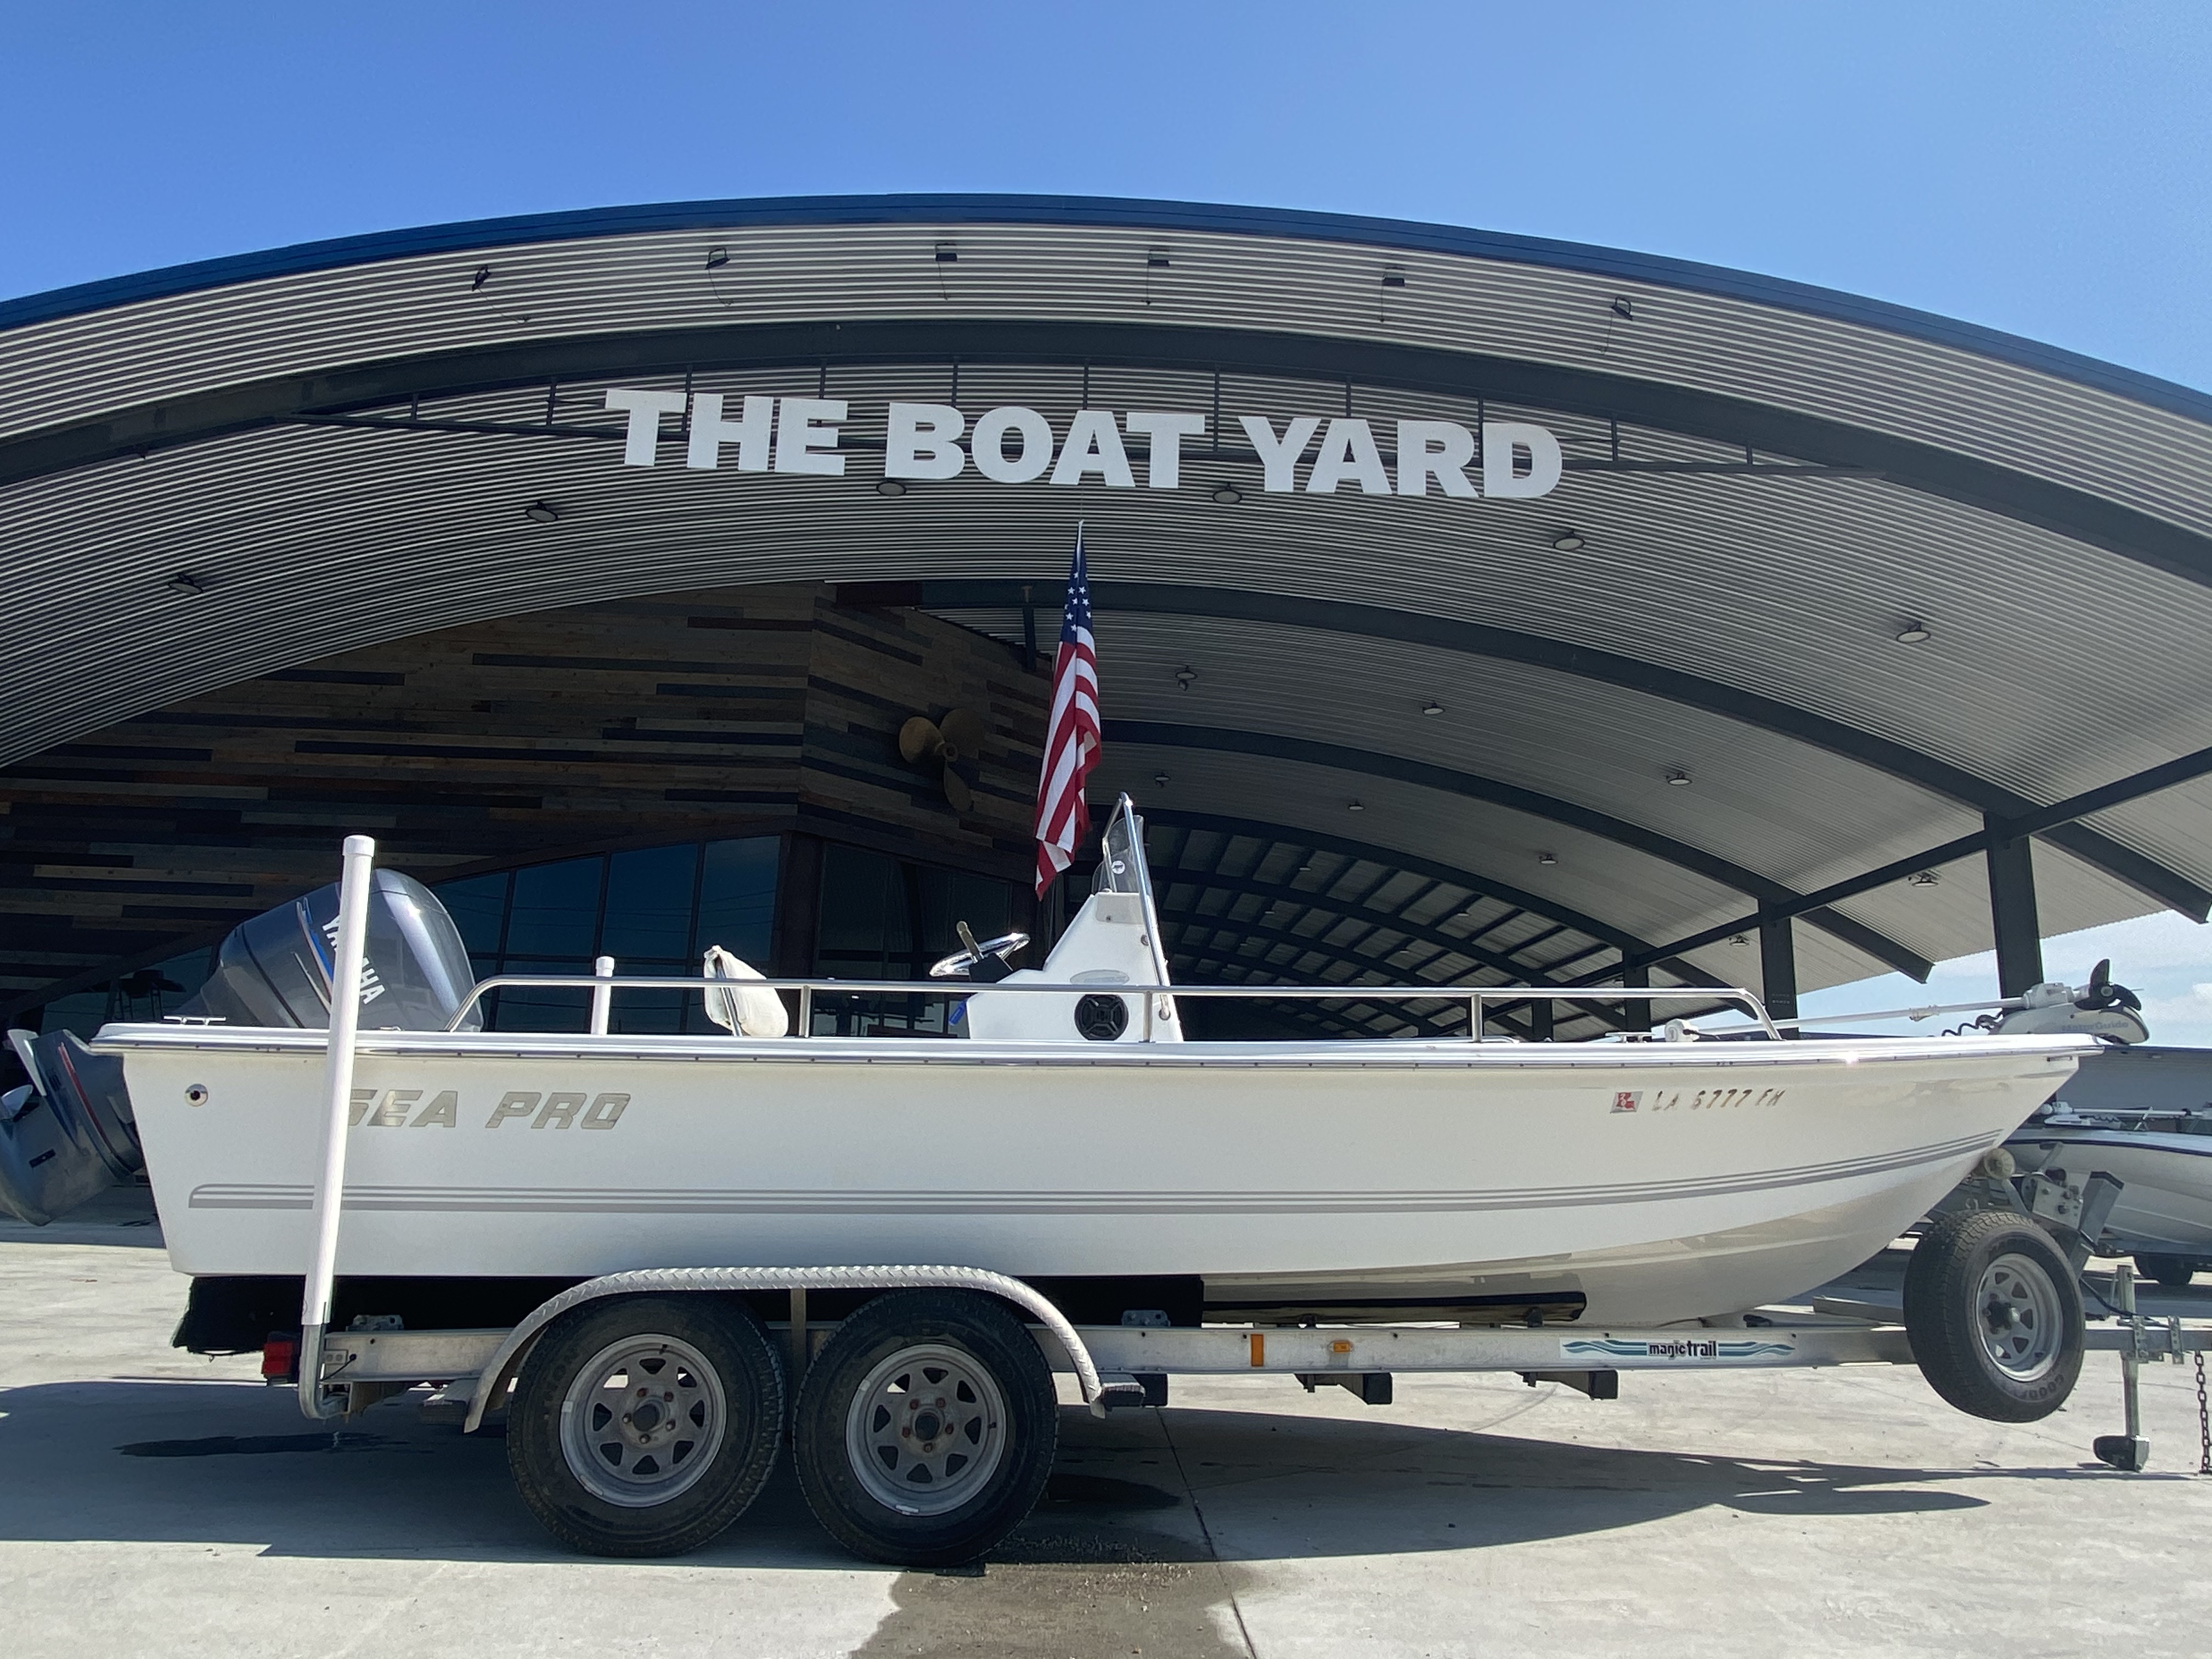 2003 Sea Pro boat for sale, model of the boat is SV2100 & Image # 1 of 12